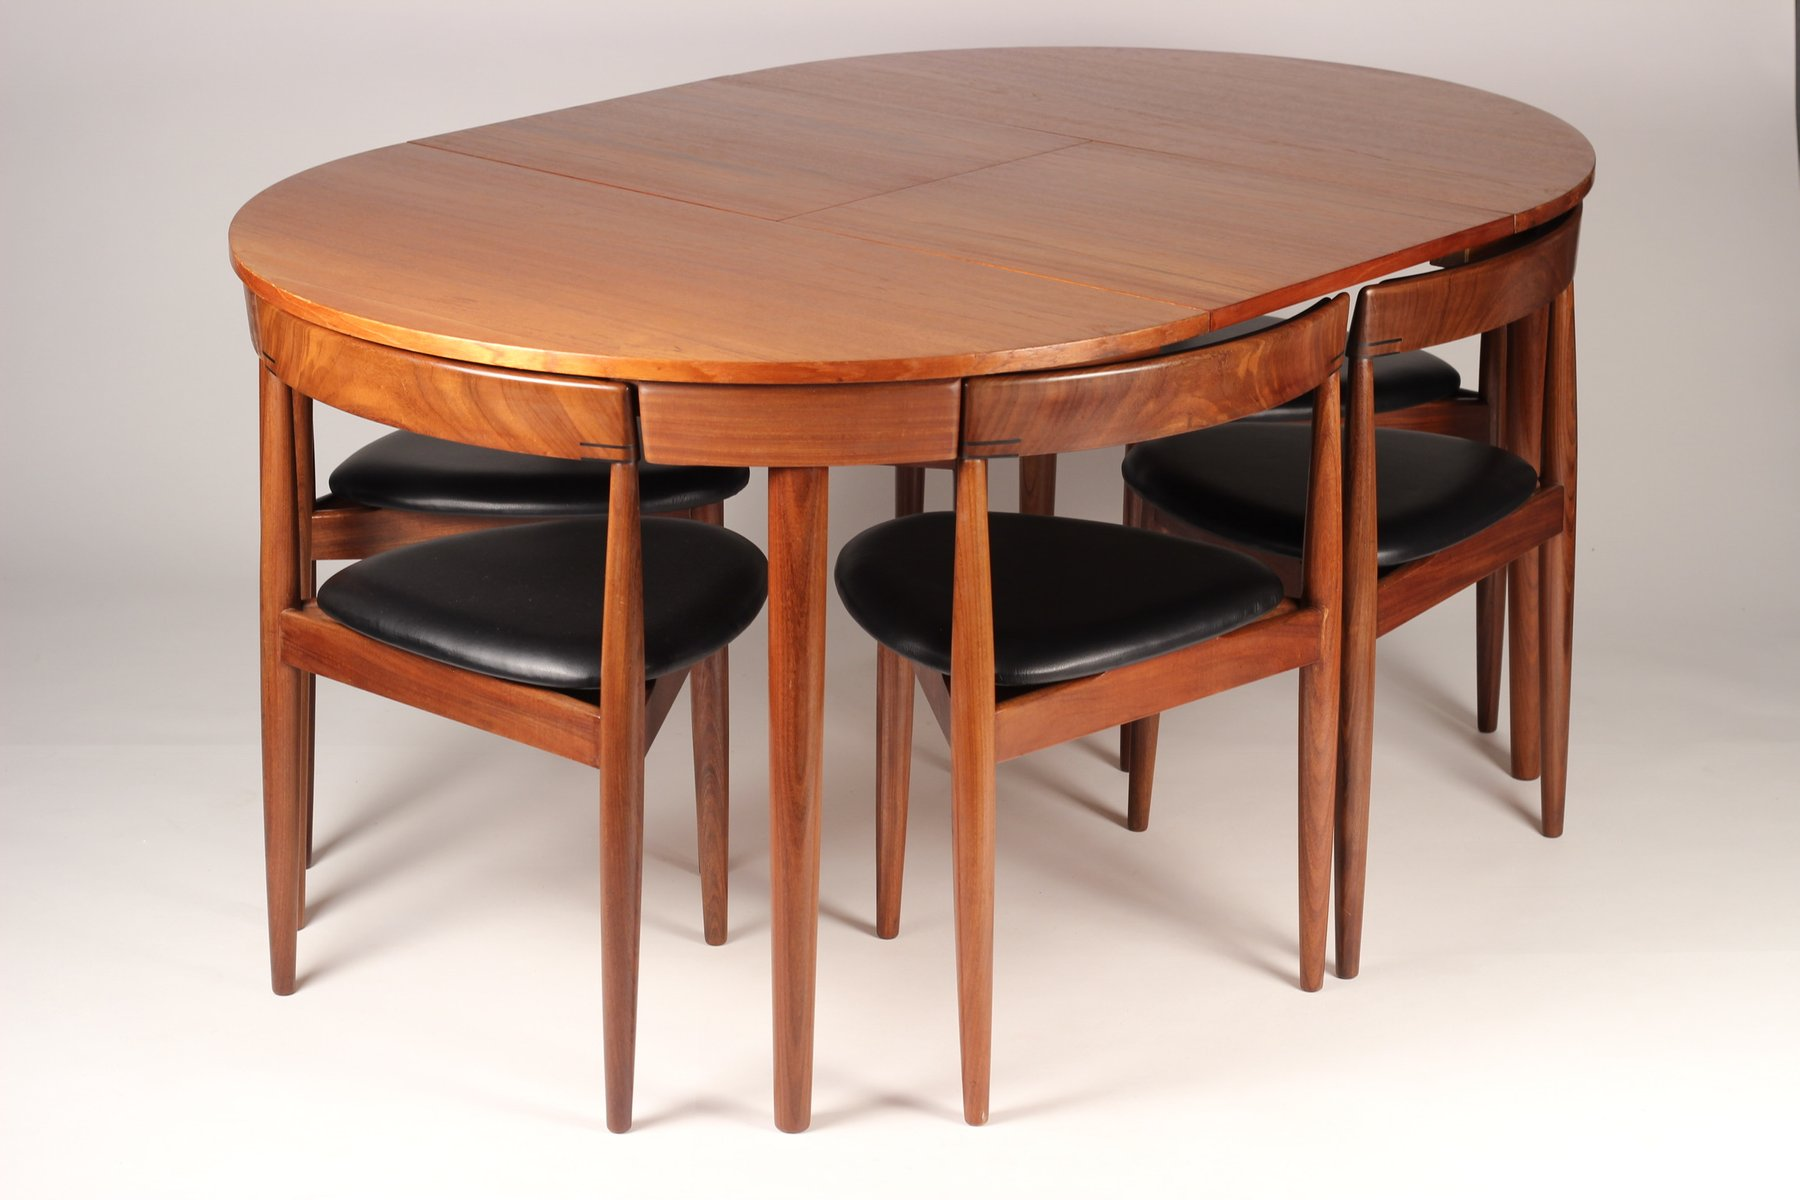 Extendable Dining Table With Chairs By Hans Olsen For Frem Røjle - Extendable dining table seats 6